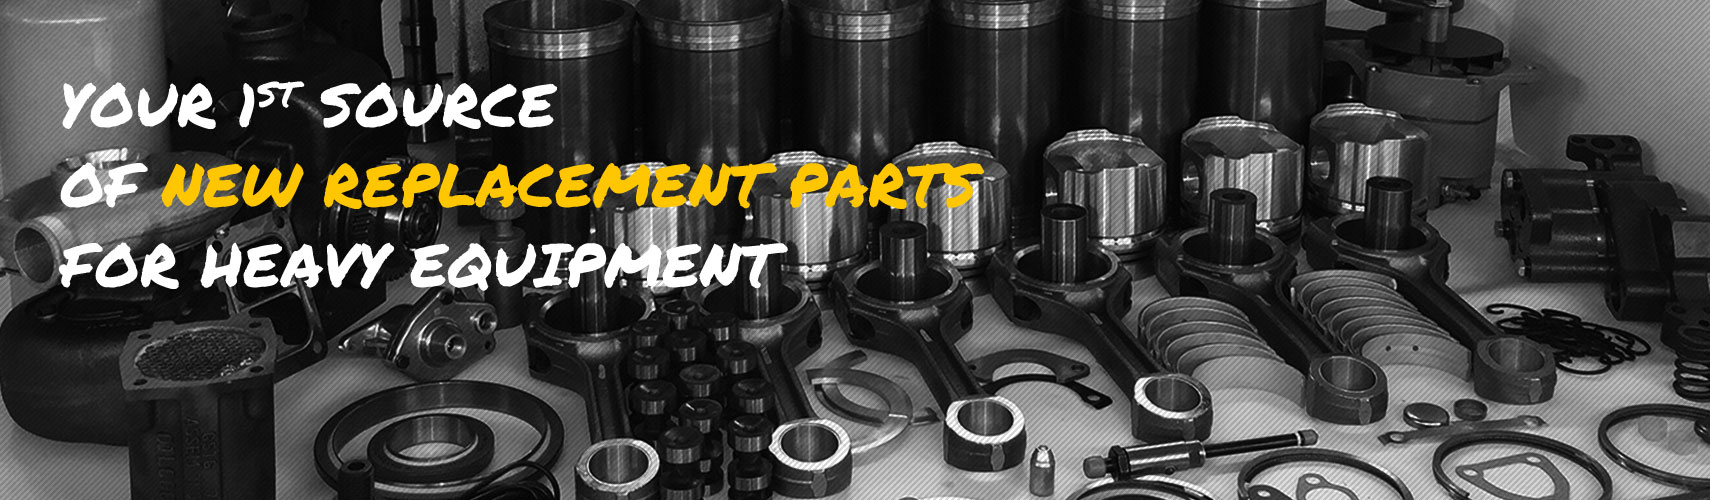 Diron Parts - Your 1st source of new replacement parts for heavy equipment